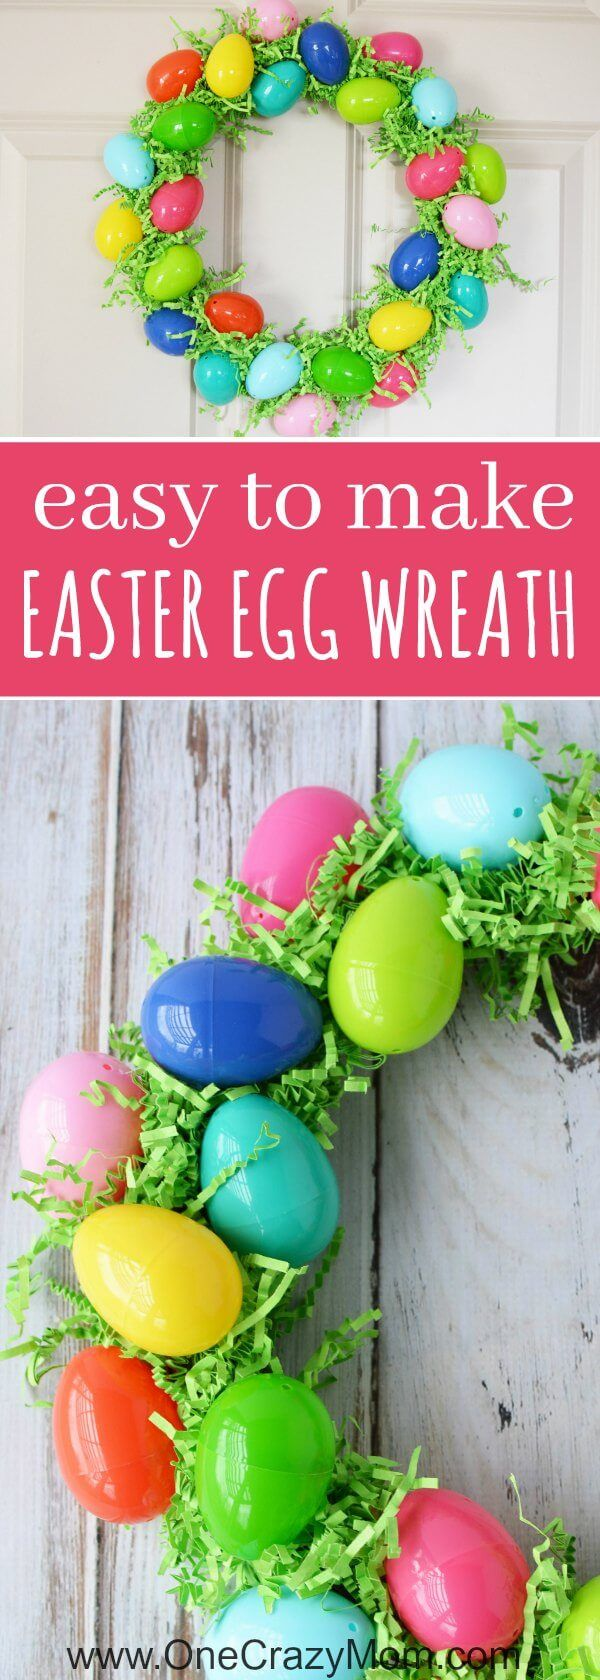 Make this DIY Easter Egg Wreath with items from the dollar store. You will love these simple Easter decorations and Easter egg crafts. DIY Easter Crafts are so fun! Try making Easy Easter Wreaths!